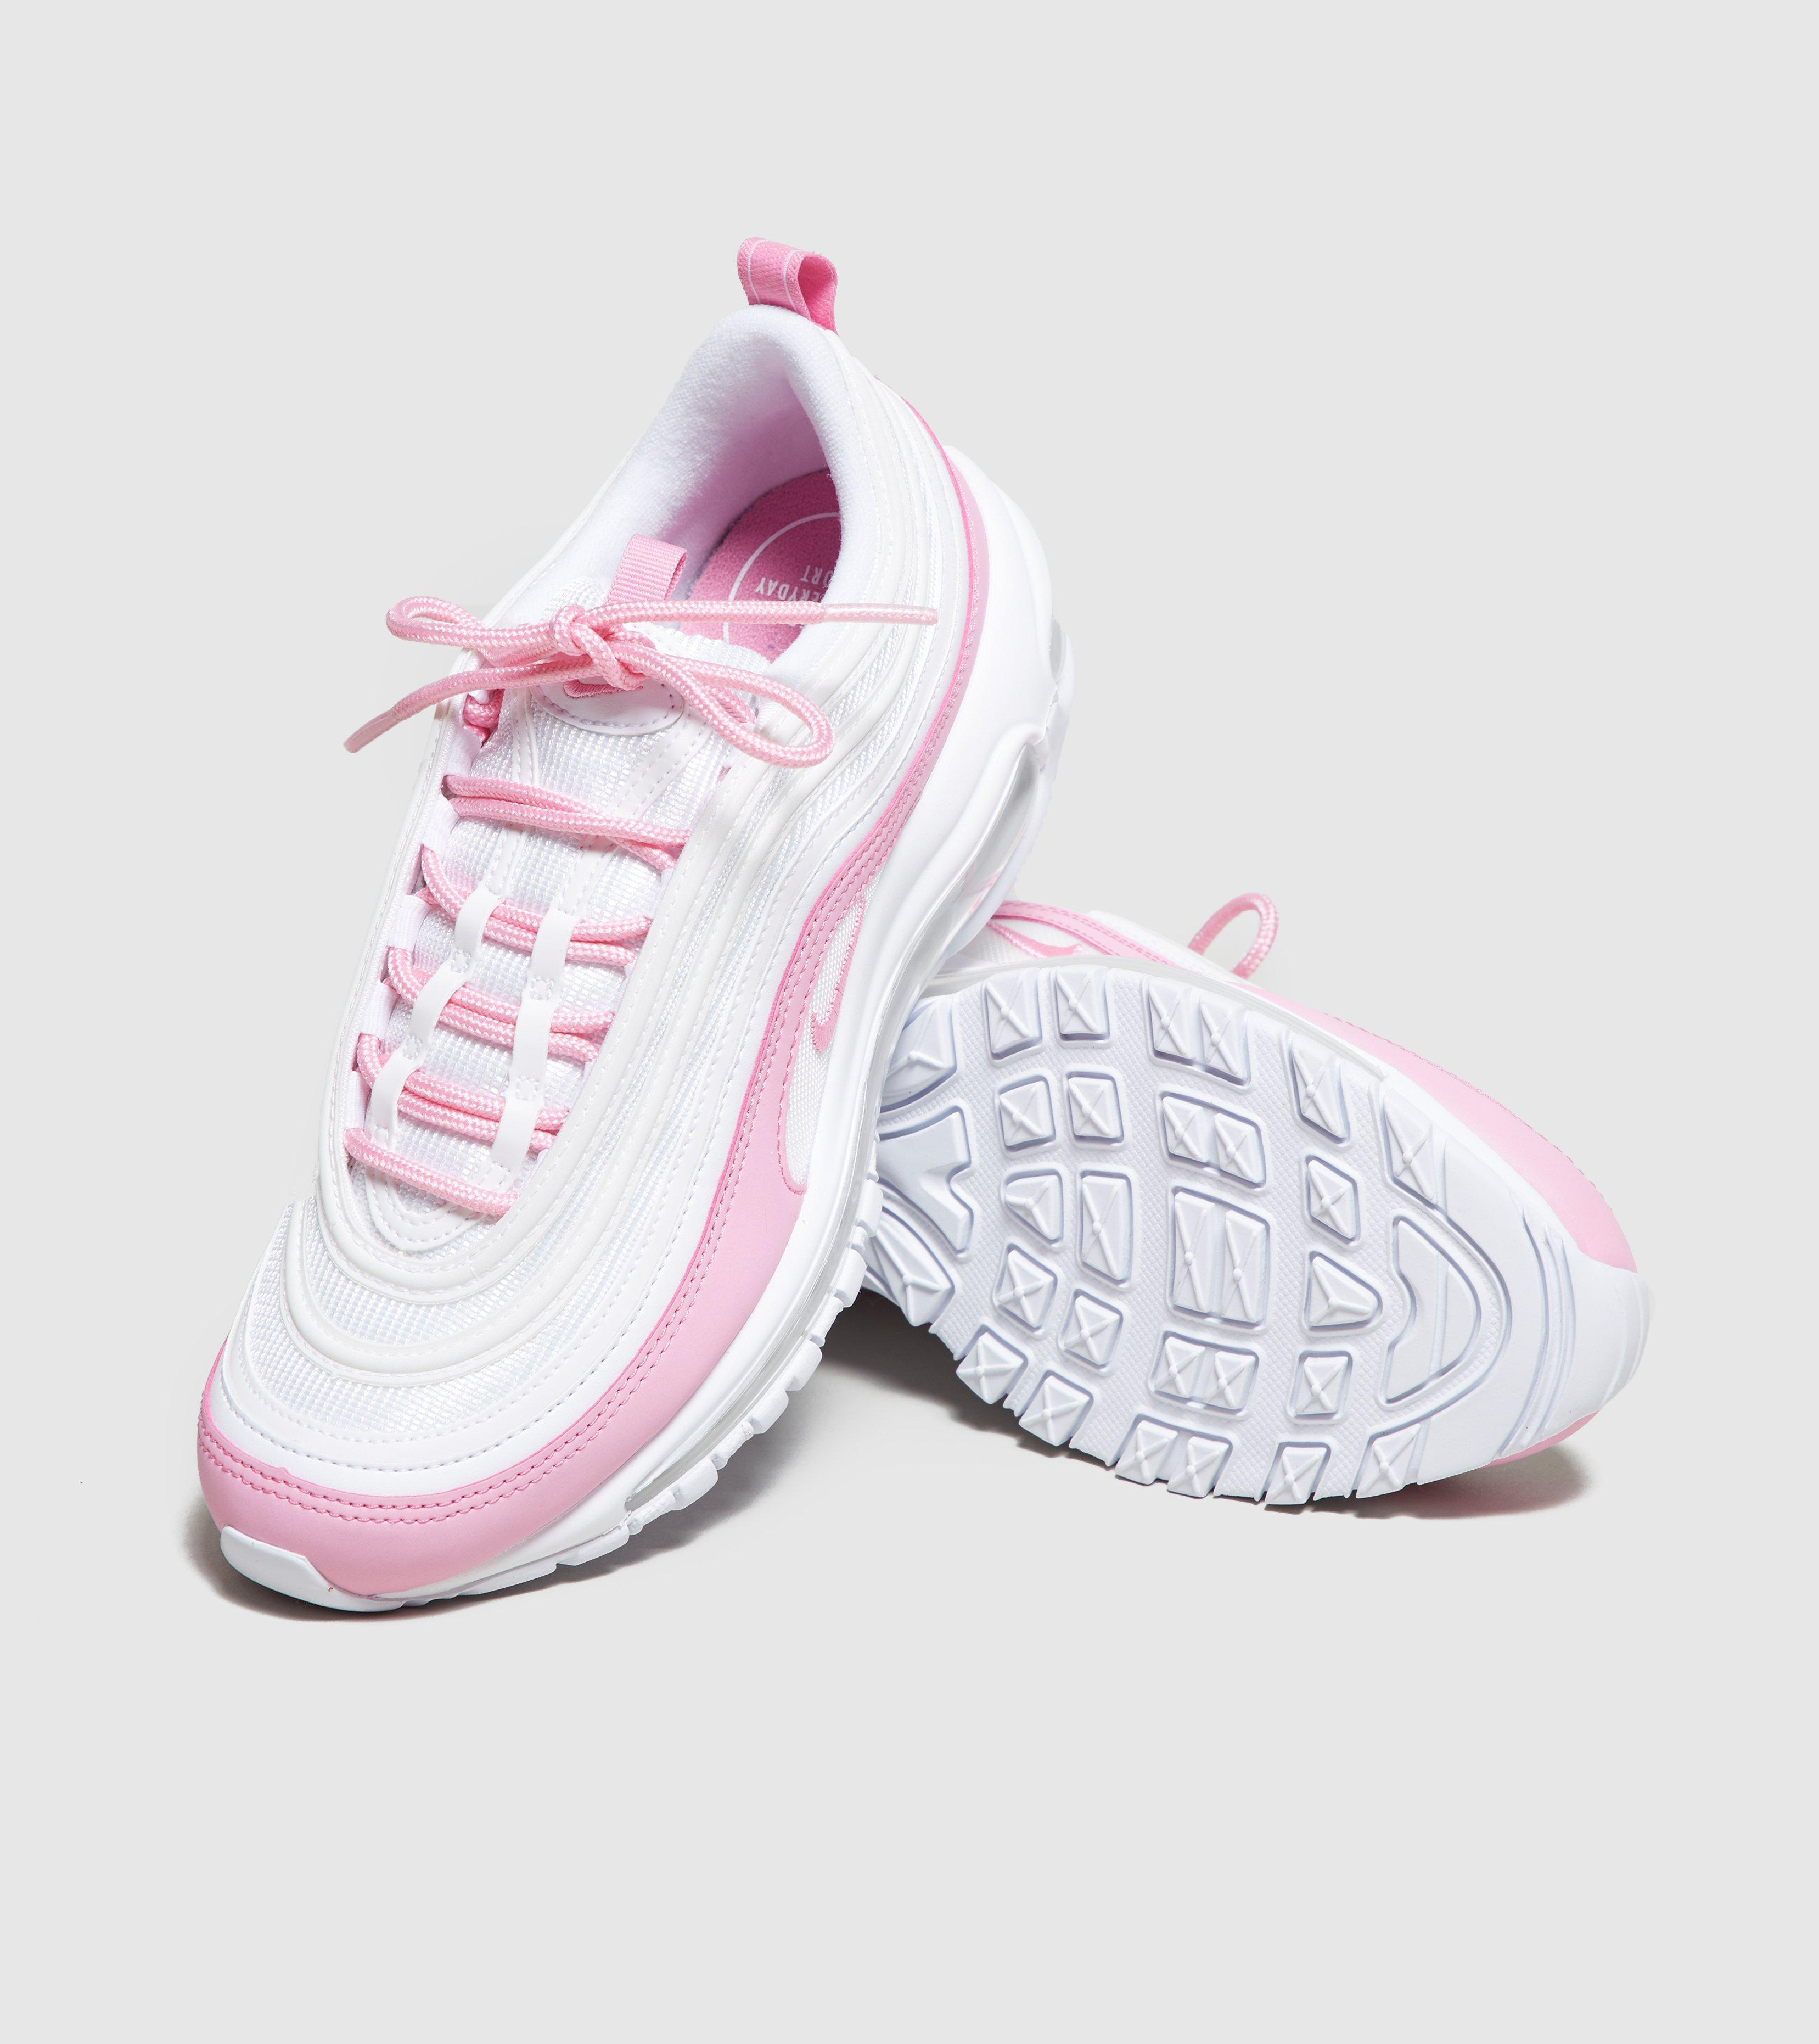 Nike Wmns Air Max 97 Essential 'Psychic Pink' | BV1982 100